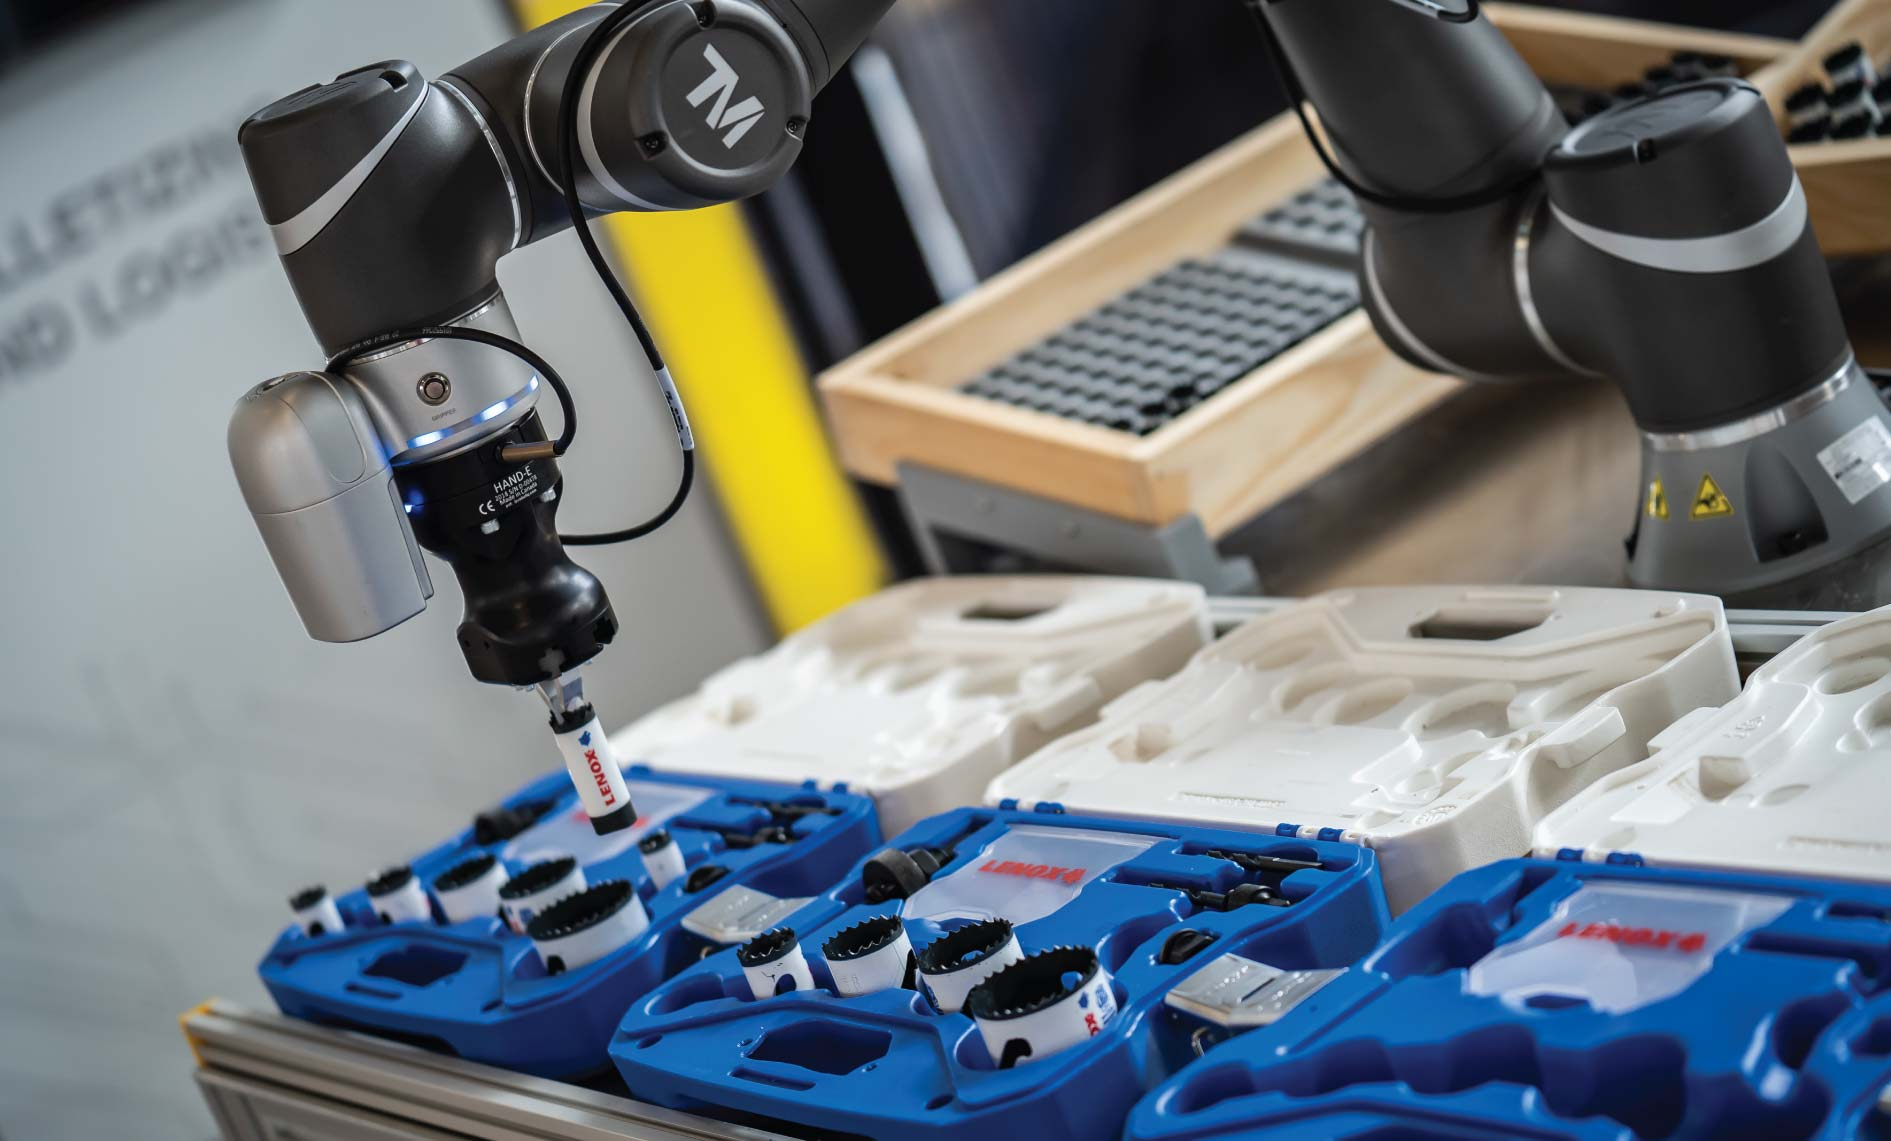 Manufactory 4.0: Our Advanced Manufacturing Center of Excellence